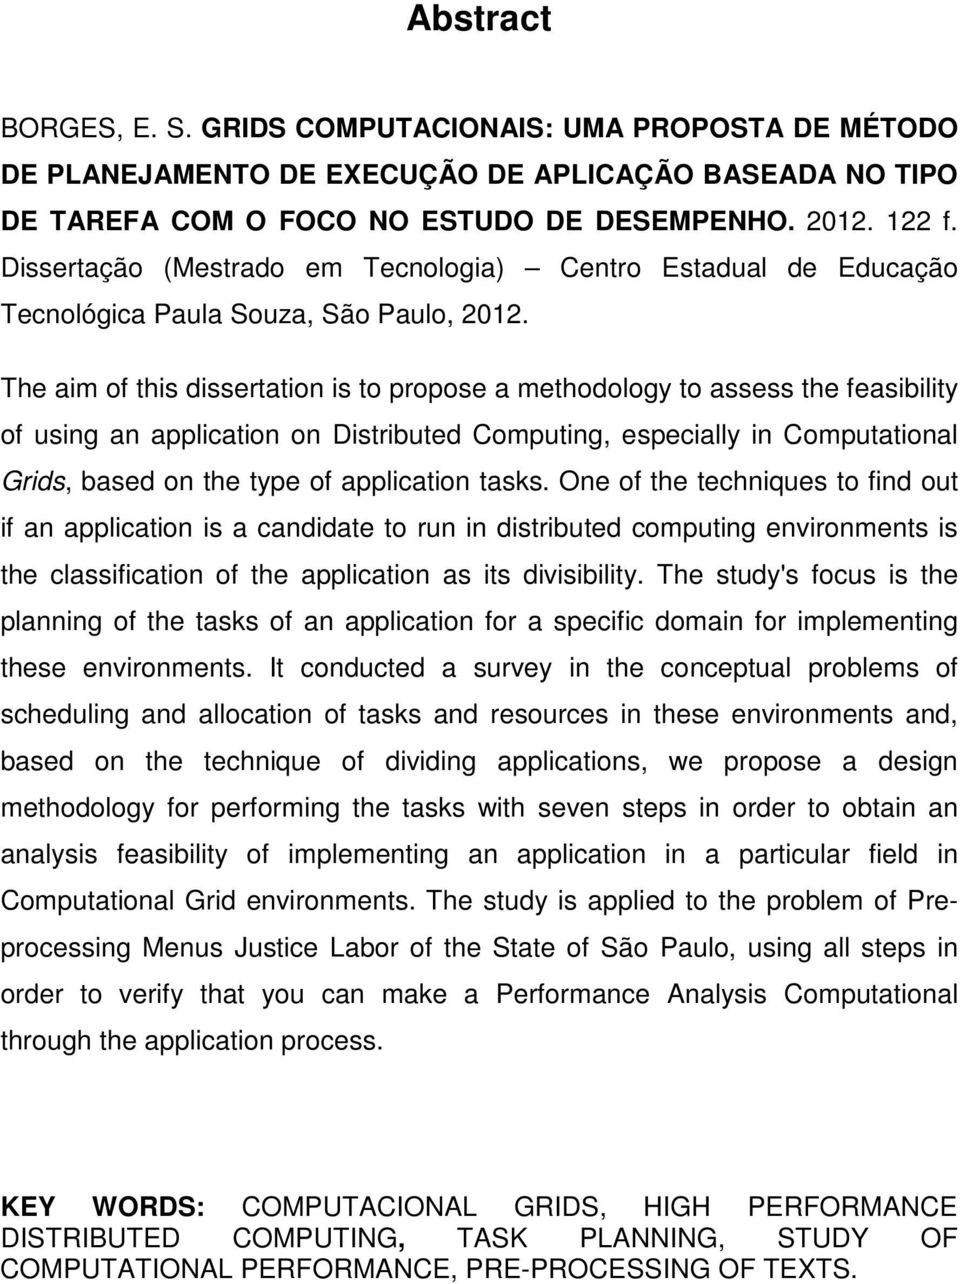 The aim of this dissertation is to propose a methodology to assess the feasibility of using an application on Distributed Computing, especially in Computational Grids, based on the type of